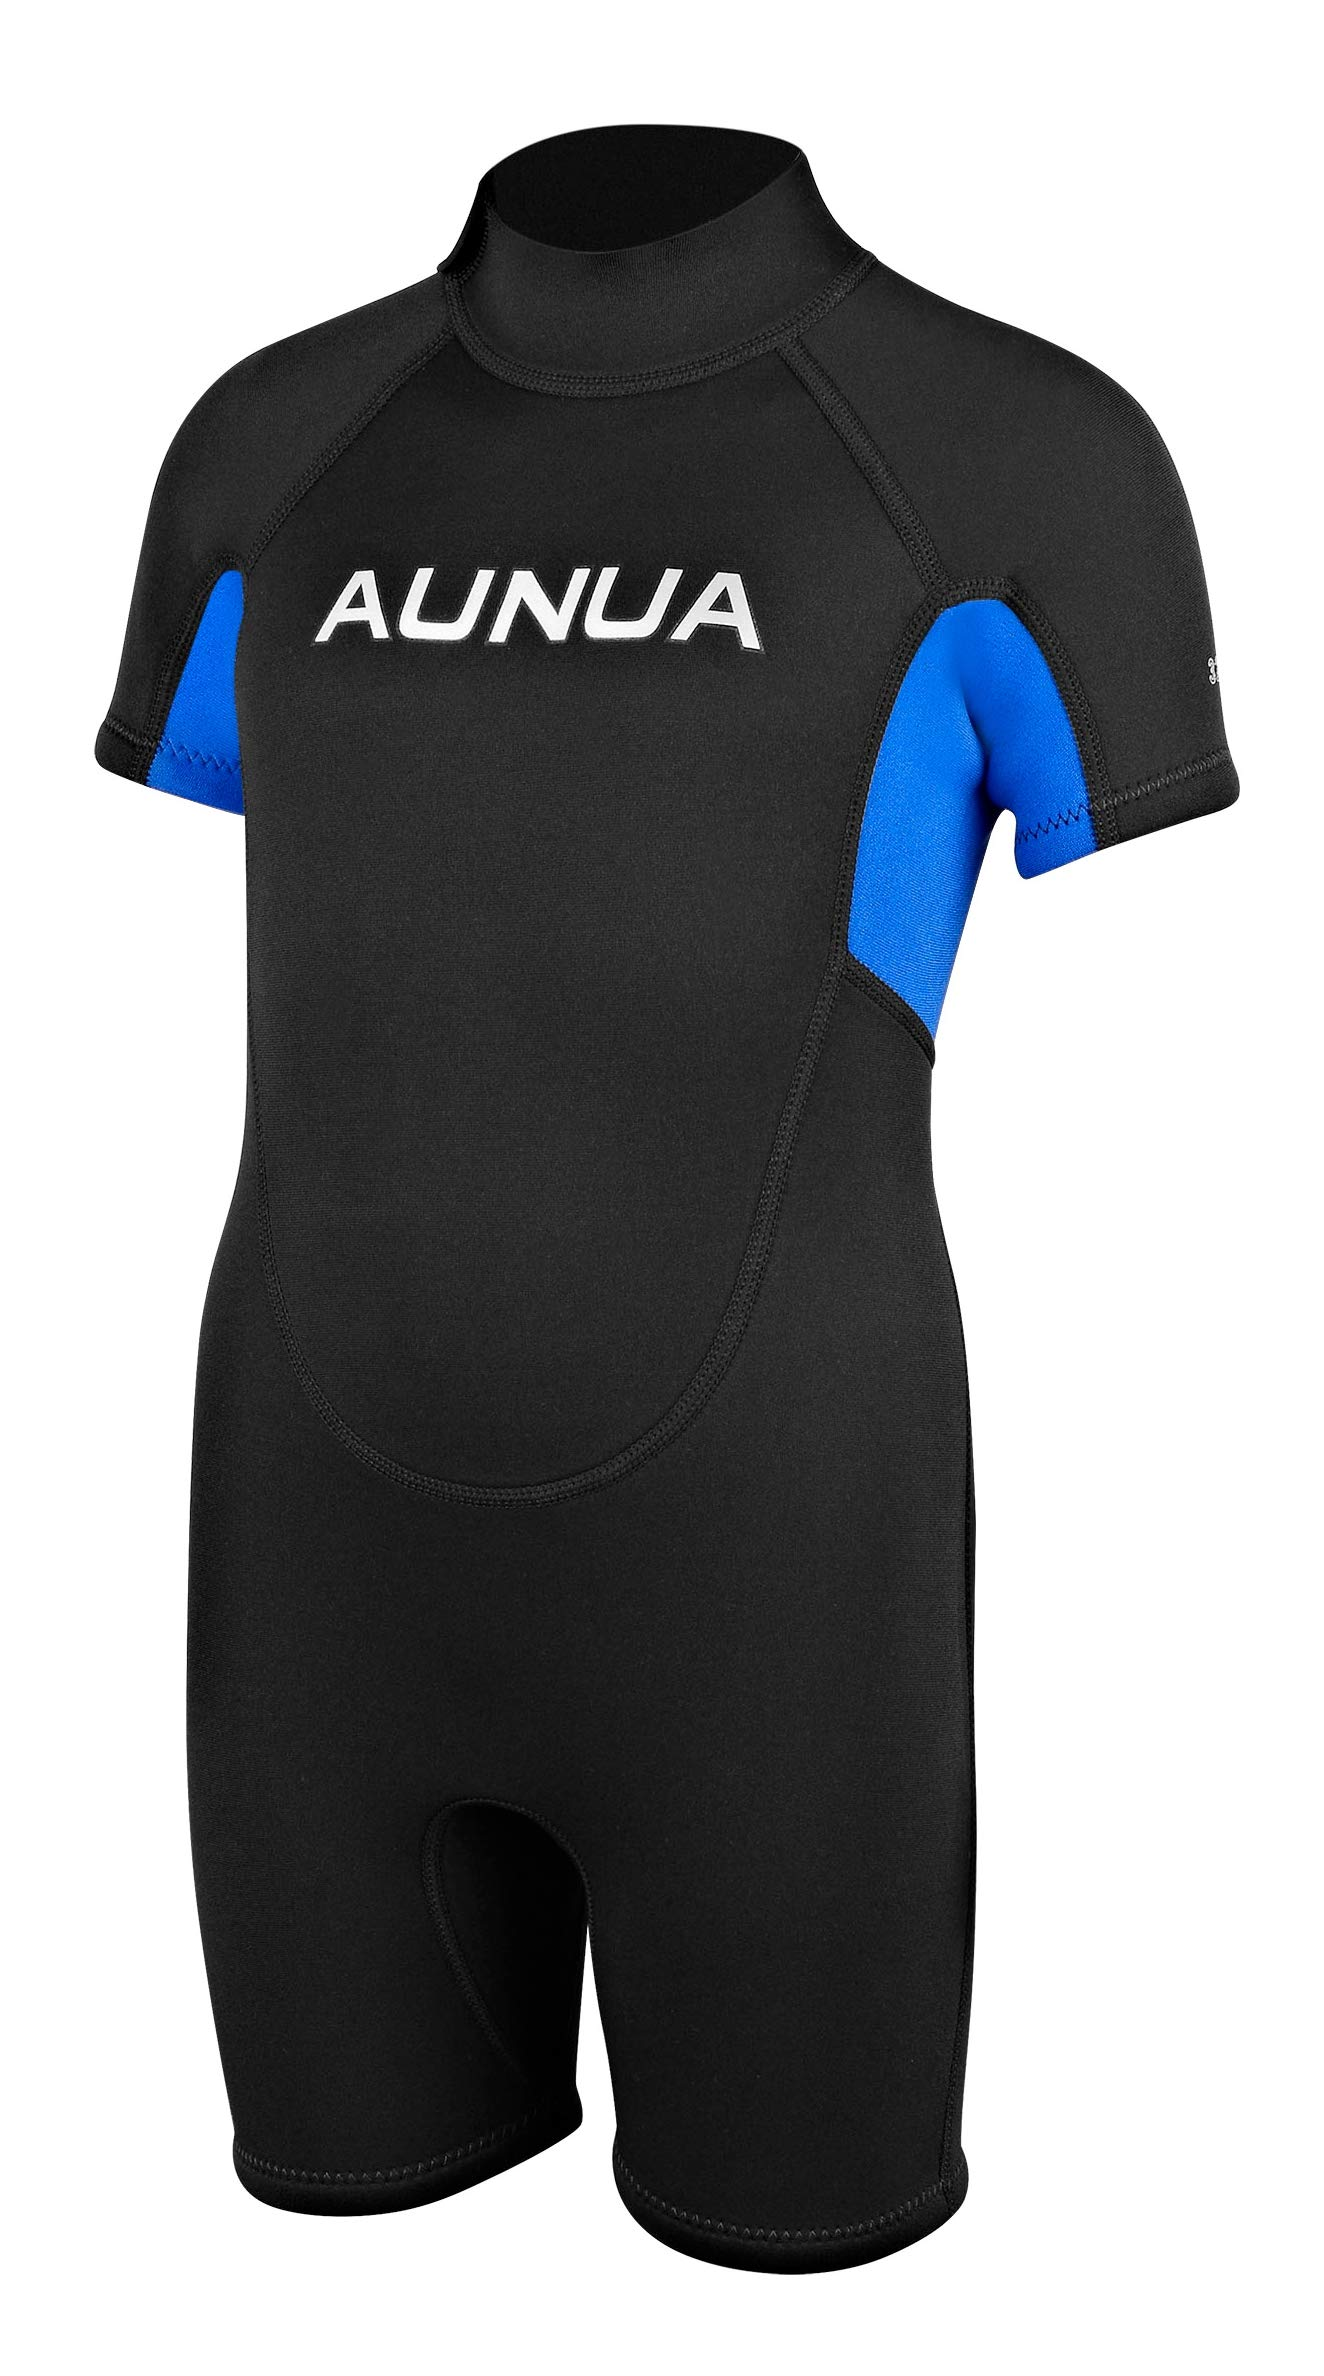 Aunua Children's 3mm Youth Swimming Suit Shorty Wetsuits Neoprene for Kids Keep Warm(7035 BlackBlue 10) by Aunua